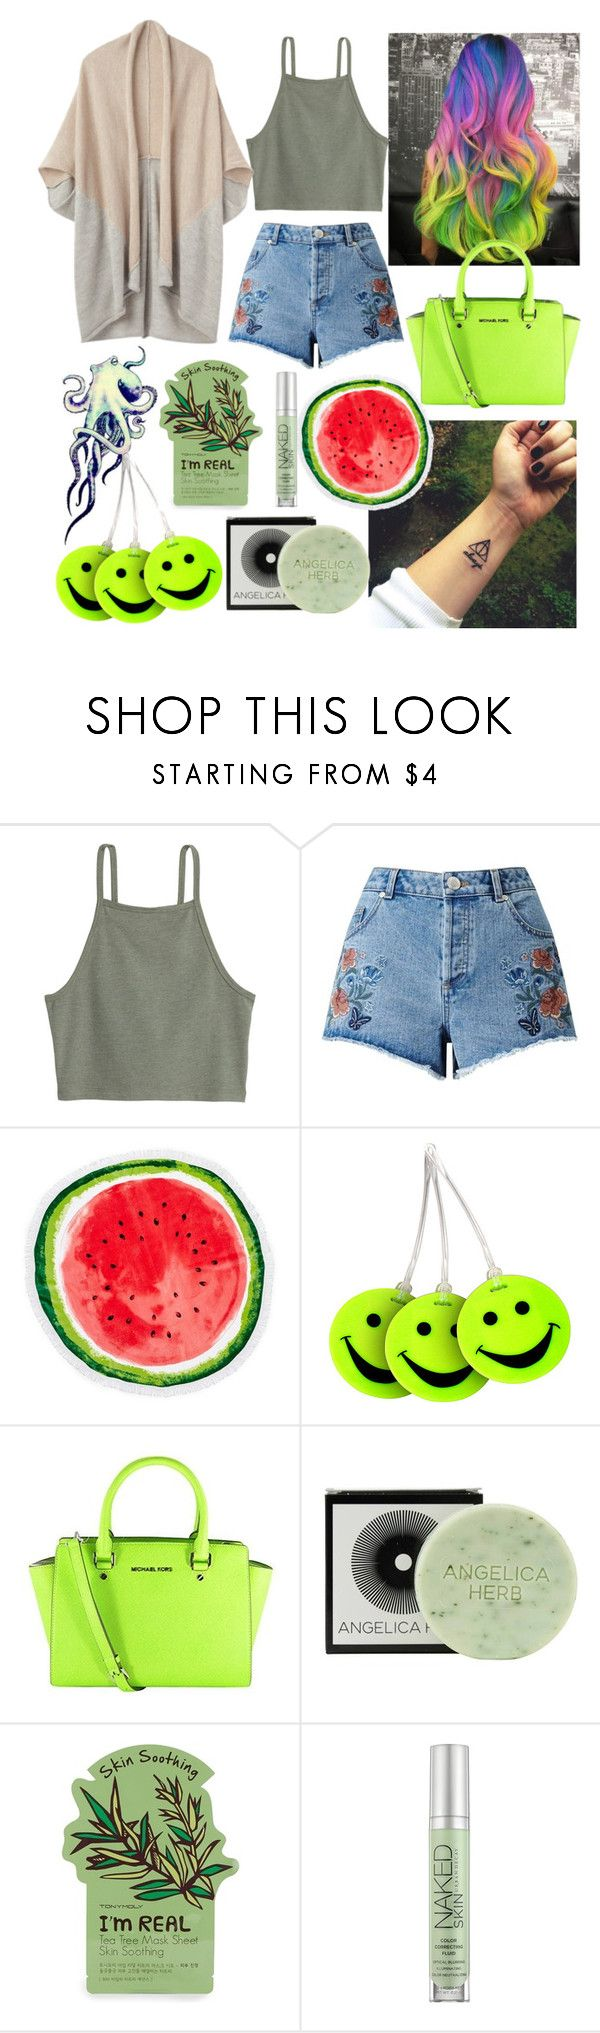 """👷🚞"" by georgyana7770 ❤ liked on Polyvore featuring Roberto Cavalli, Miss Selfridge, Nordstrom Rack, Lewis N. Clark, Michael Kors, Jayson Home, Tony Moly and Urban Decay"